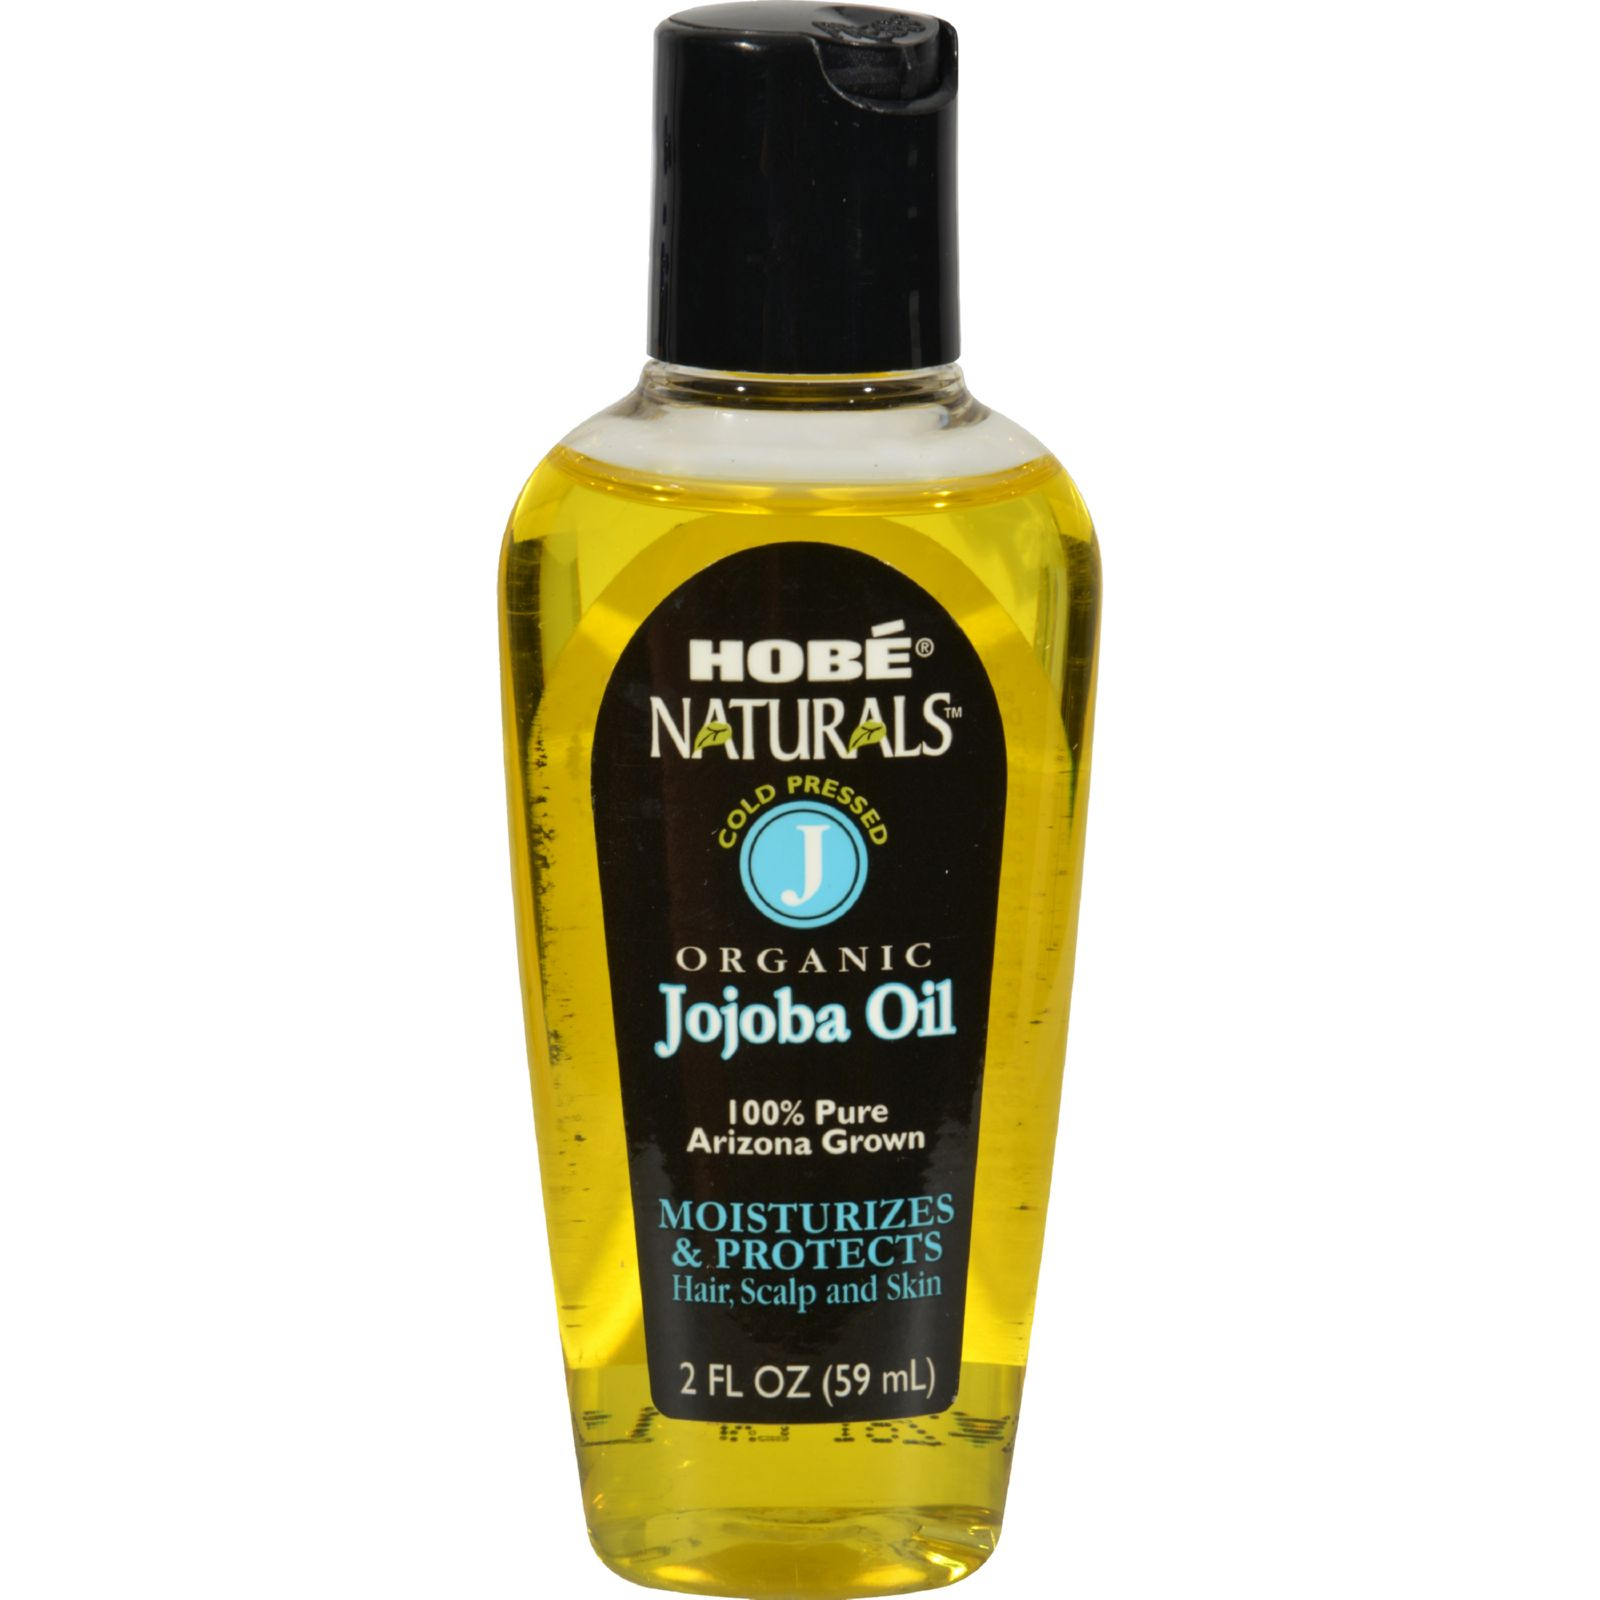 Hobe Labs Beauty Oil - Jojoba - 2 oz